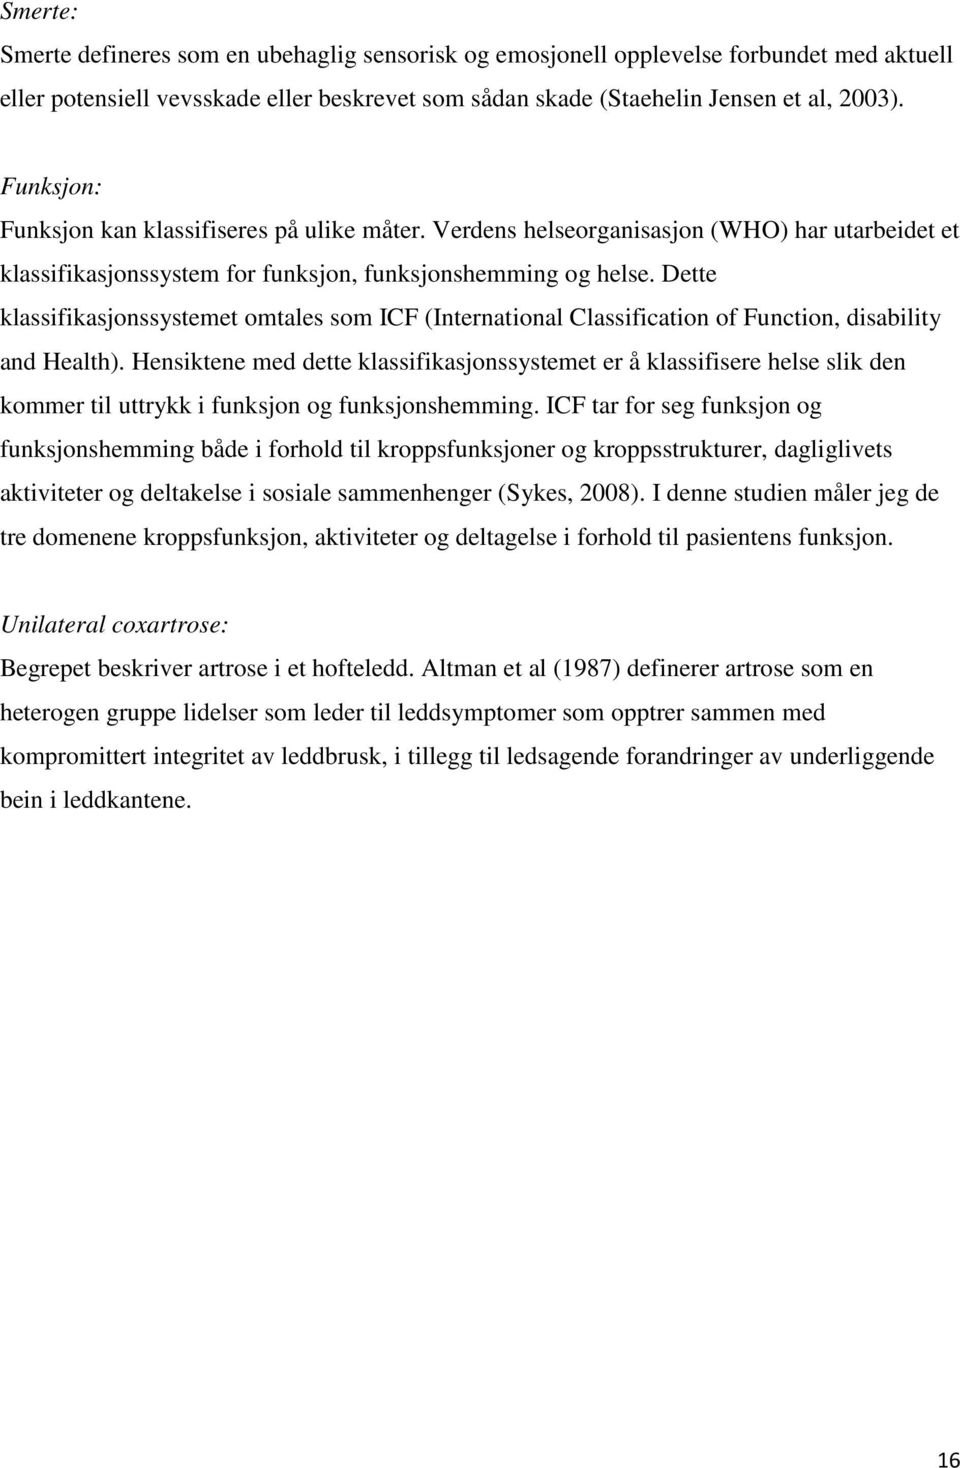 Dette klassifikasjonssystemet omtales som ICF (International Classification of Function, disability and Health).